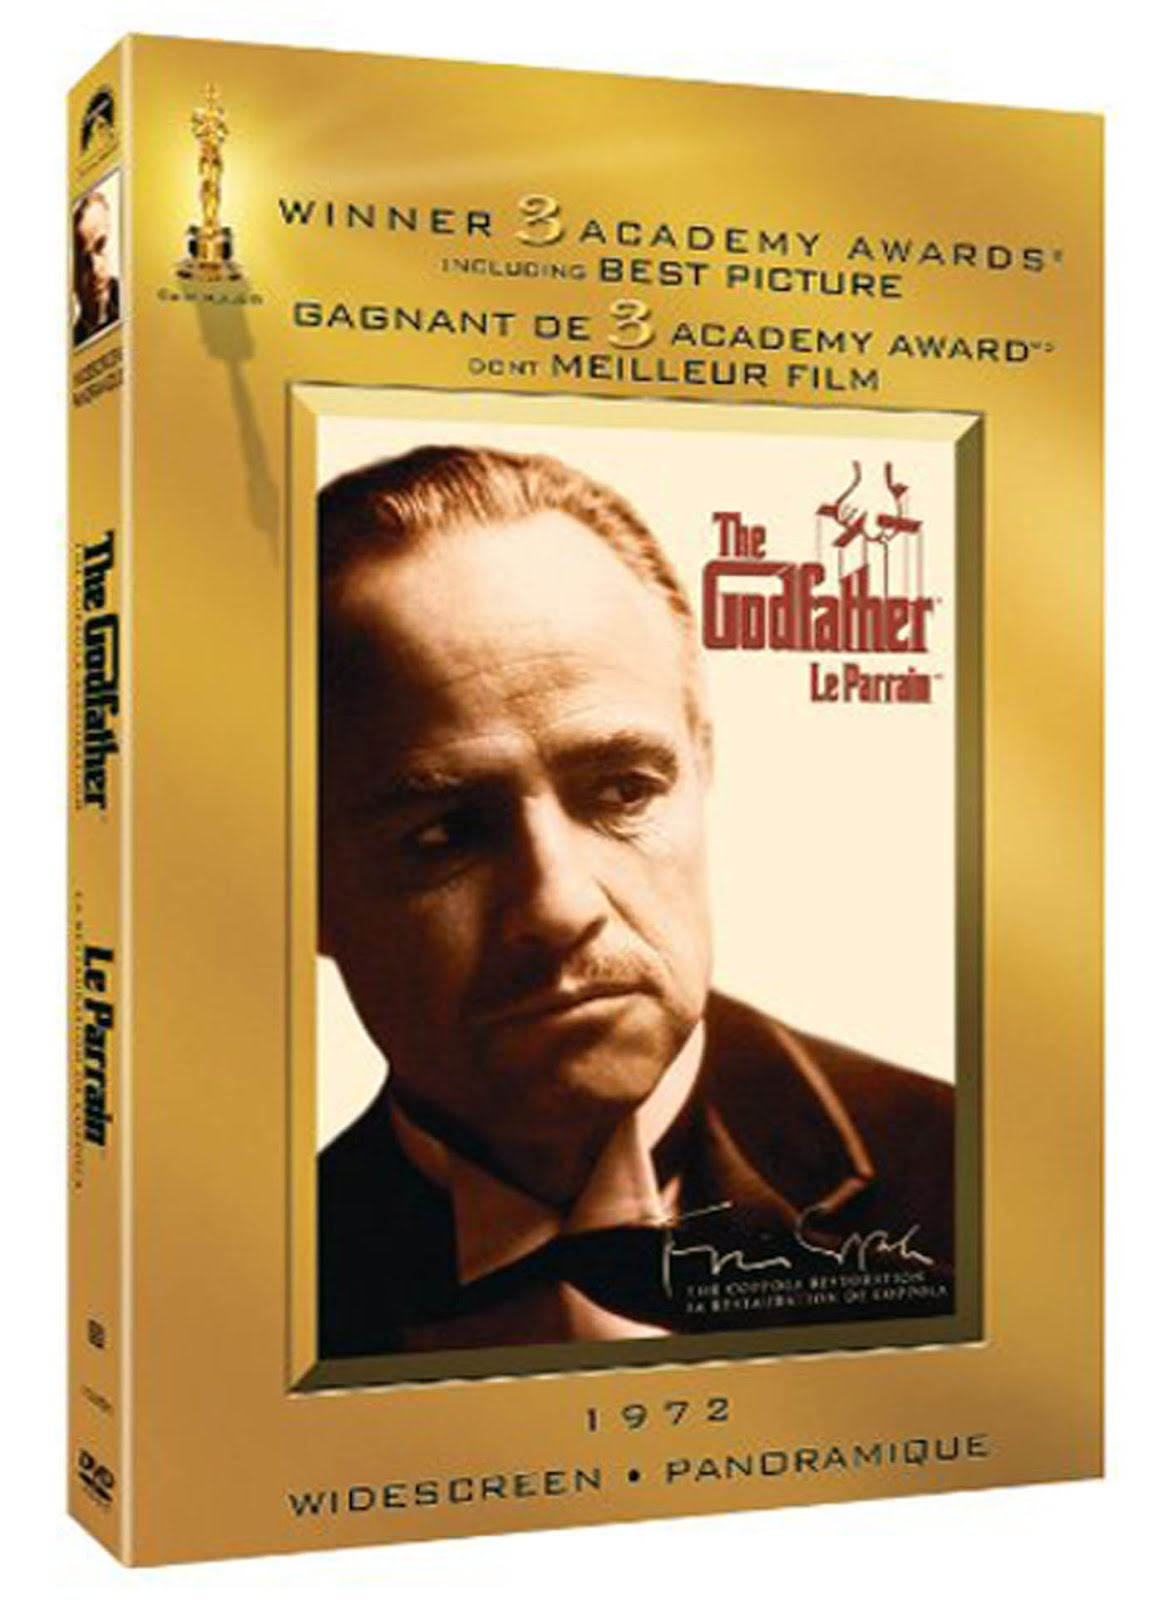 The Godfather DVD Case Box